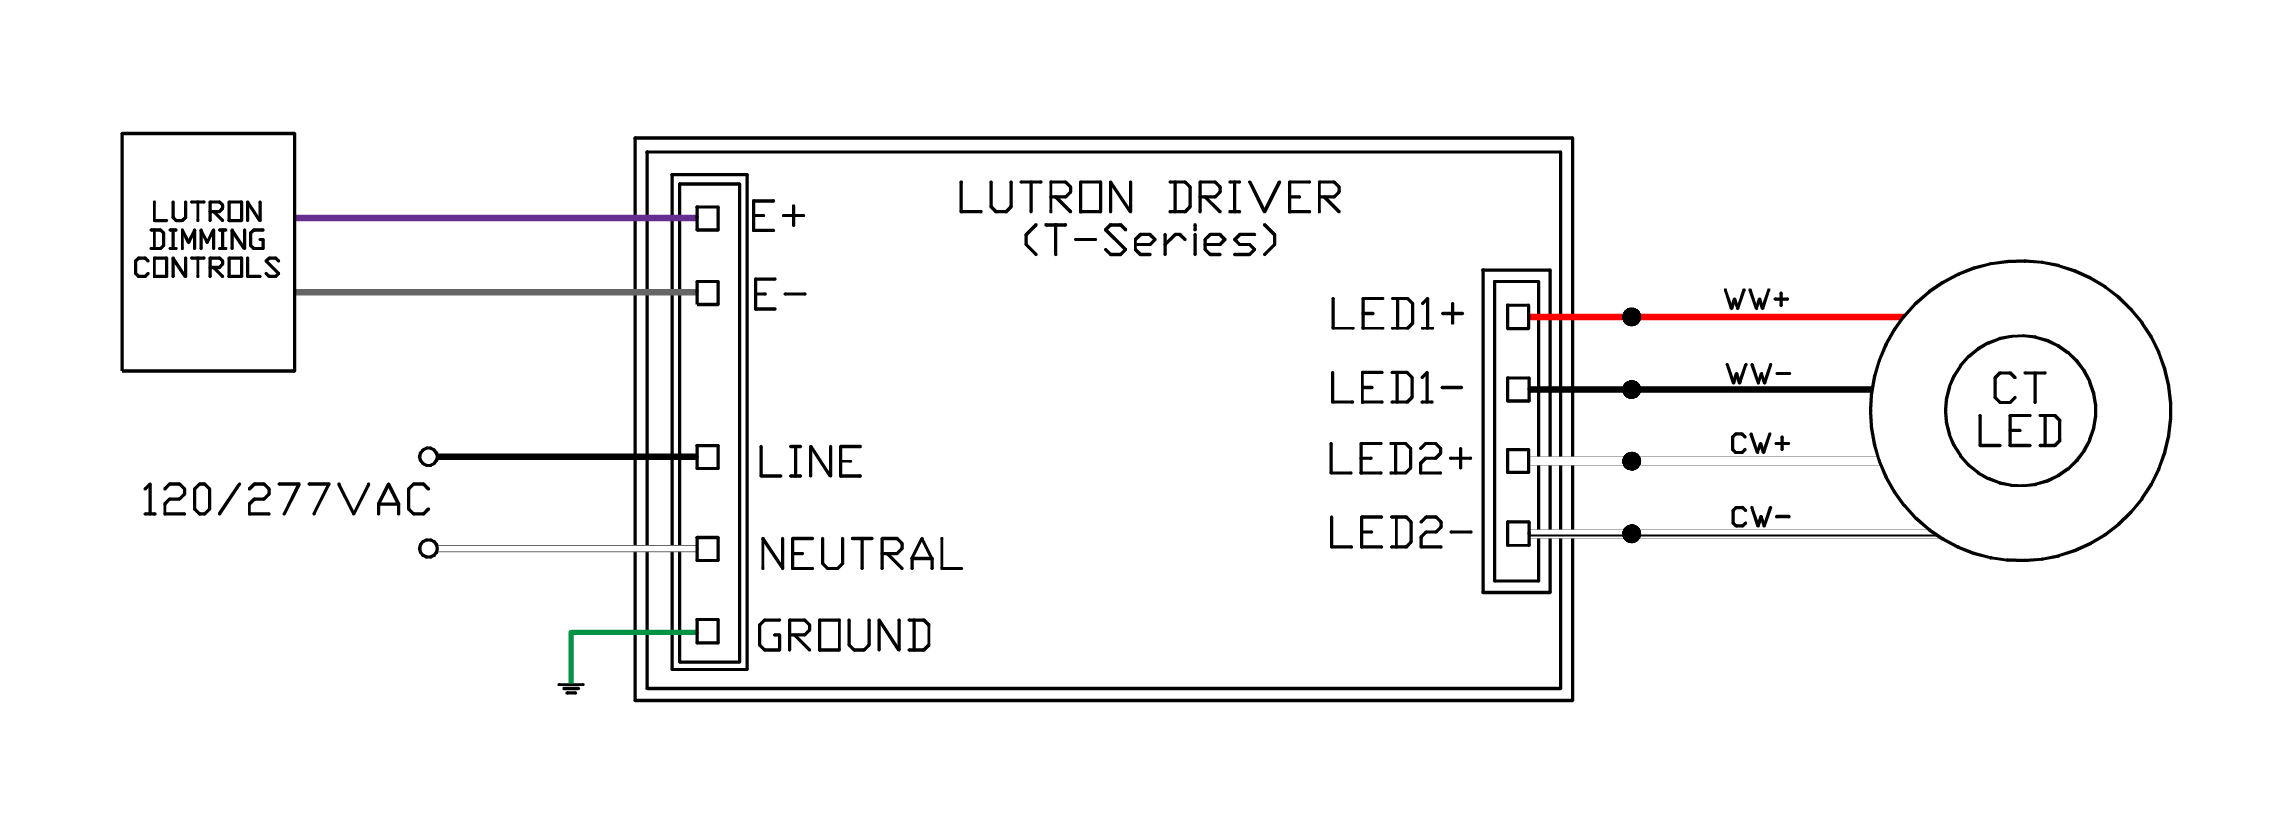 Lutron Color Tuning